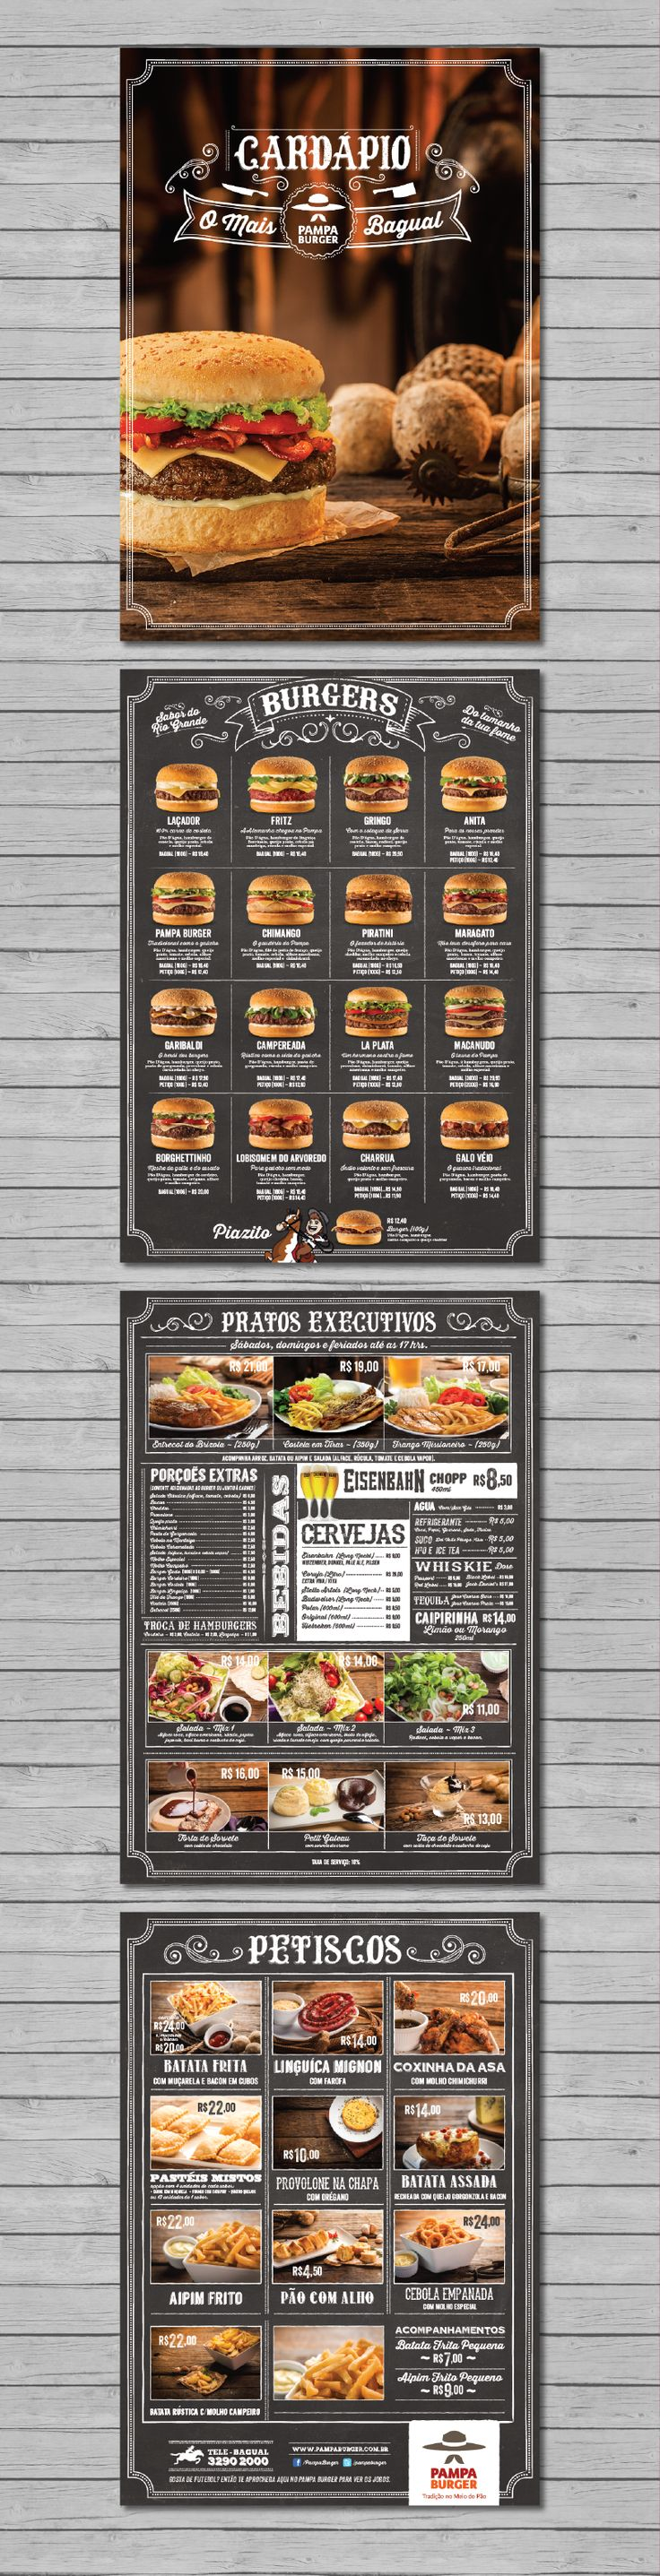 523 best Restaurant menu design images on Pinterest | Restaurant ...